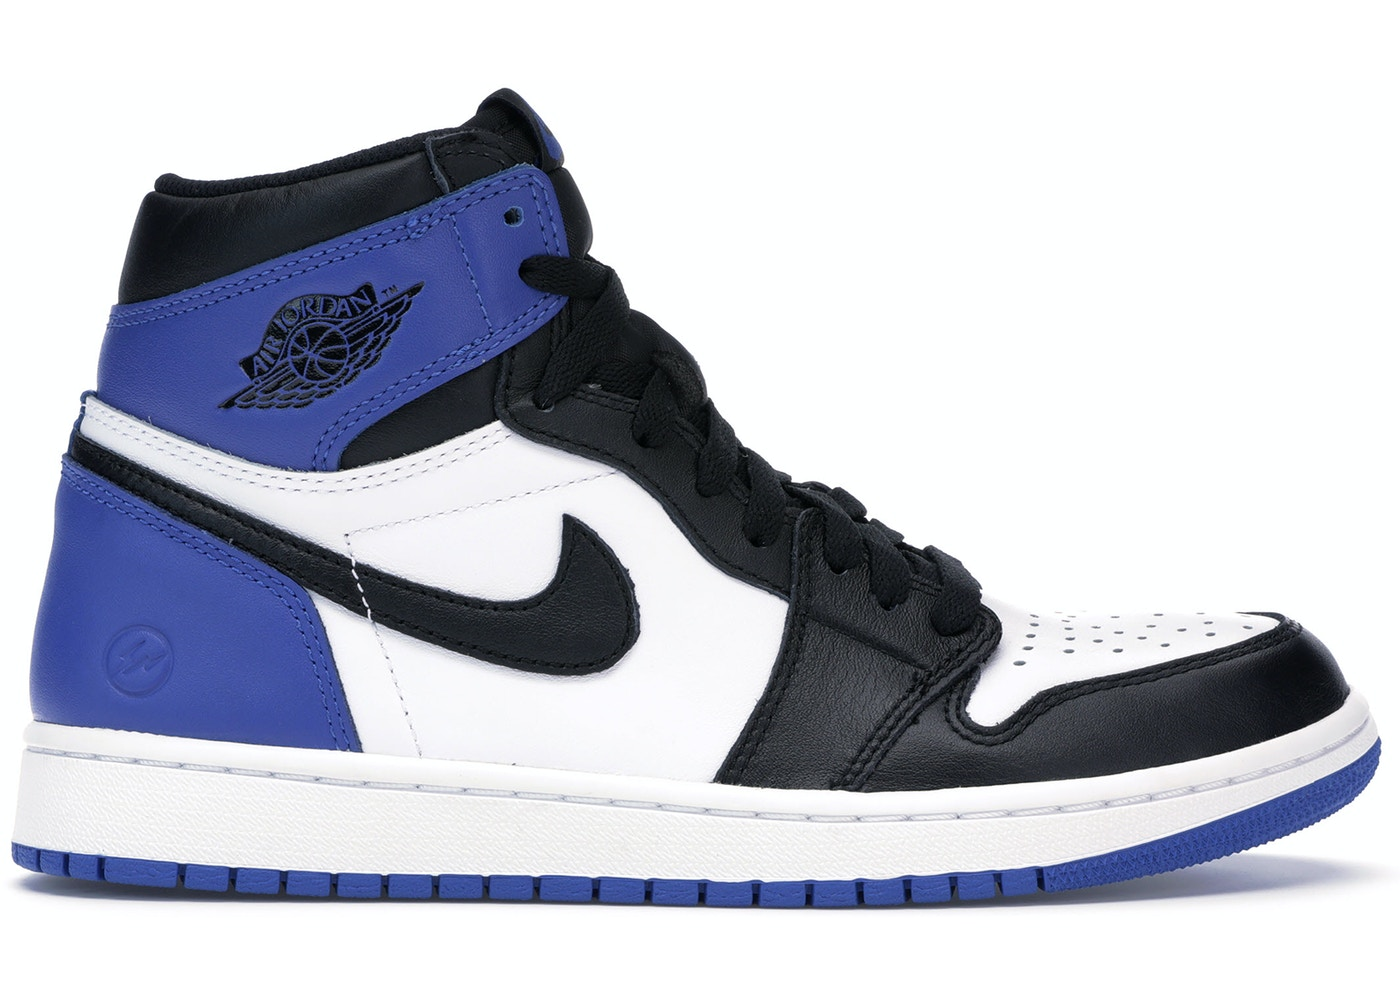 best website 2d85e 6b75e Jordan 1 Retro Fragment - 716371-040